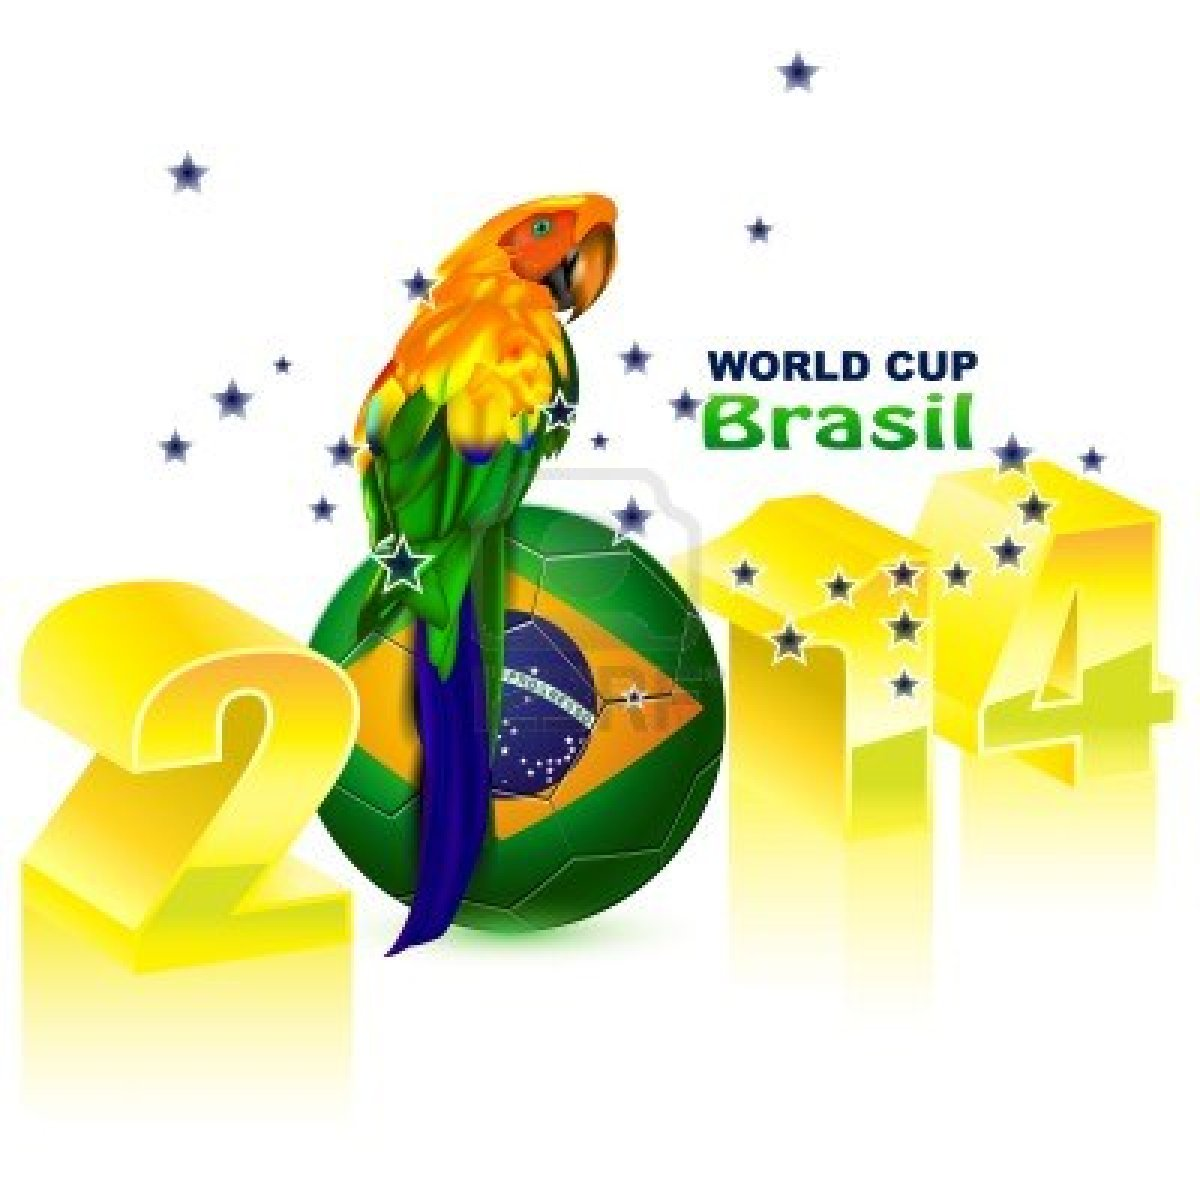 2014 world-cup